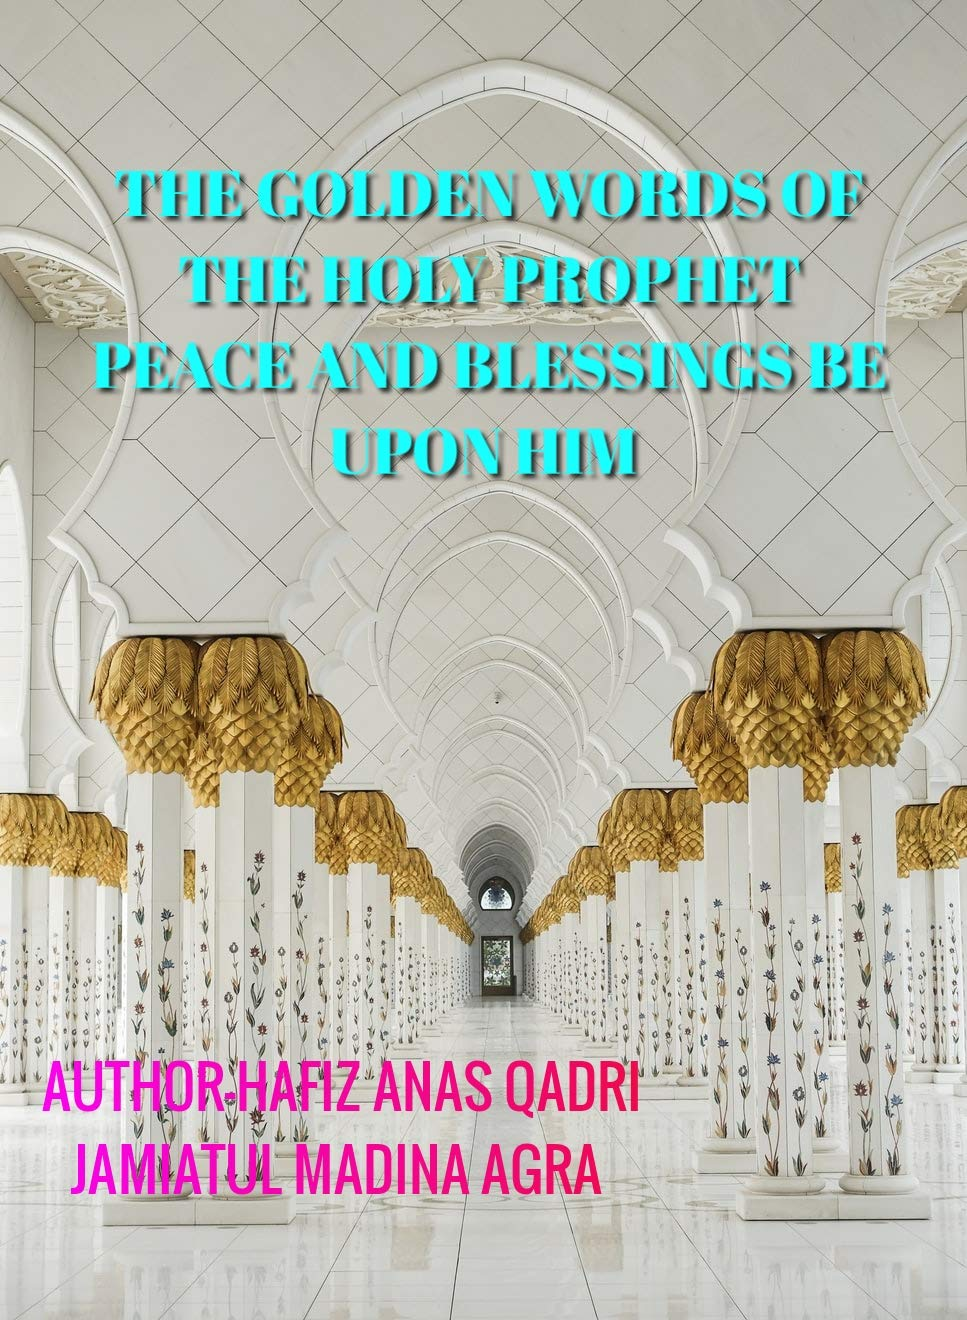 THE GOLDEN WORDS OF THE HOLY PROPHET : COLLECTION OF 40 HADITHS FROM SAHIH BUKHARI AND MUSLIM